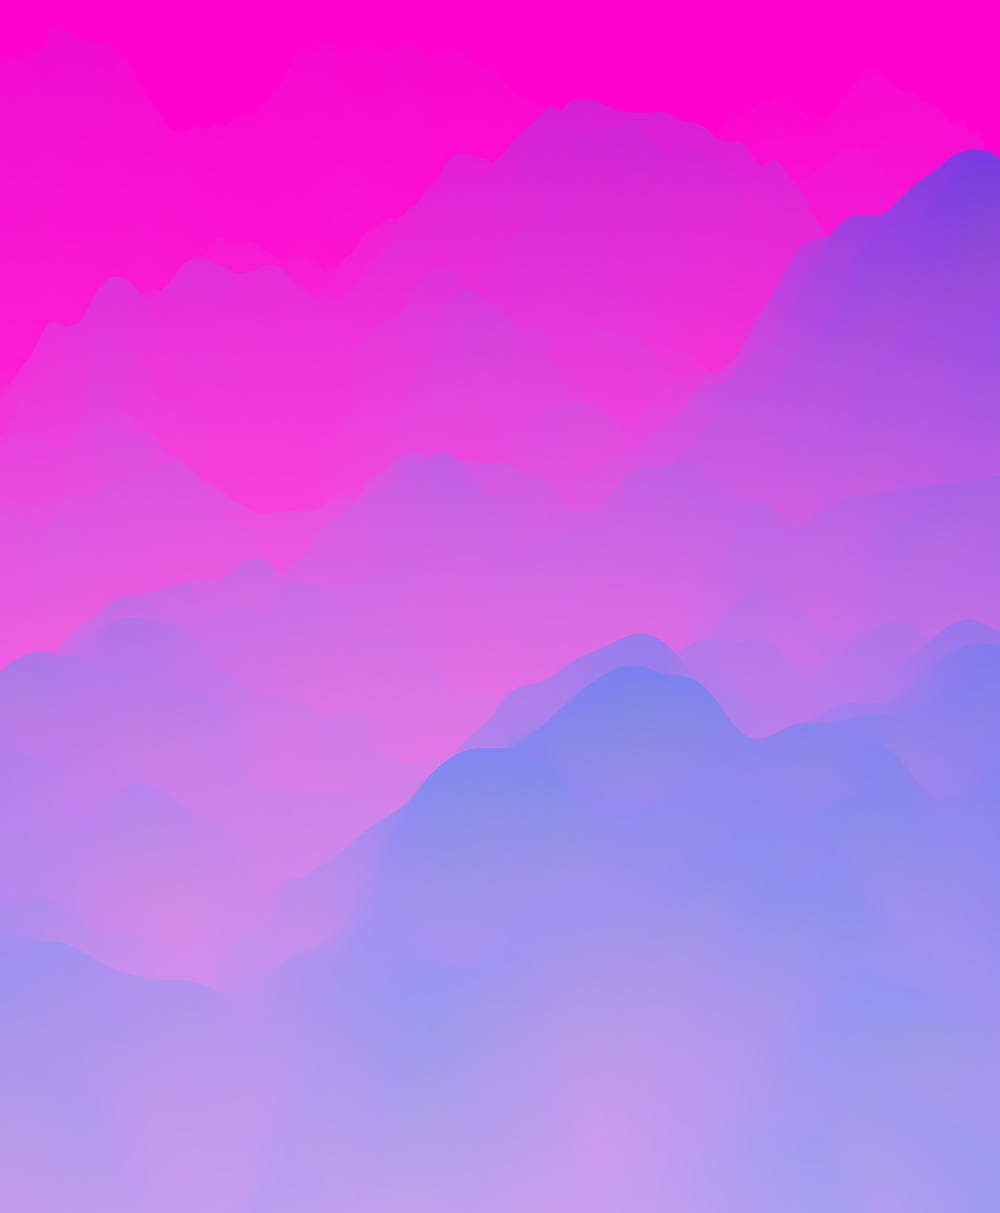 Day 2015-Sep-08 10:14:06 high.png